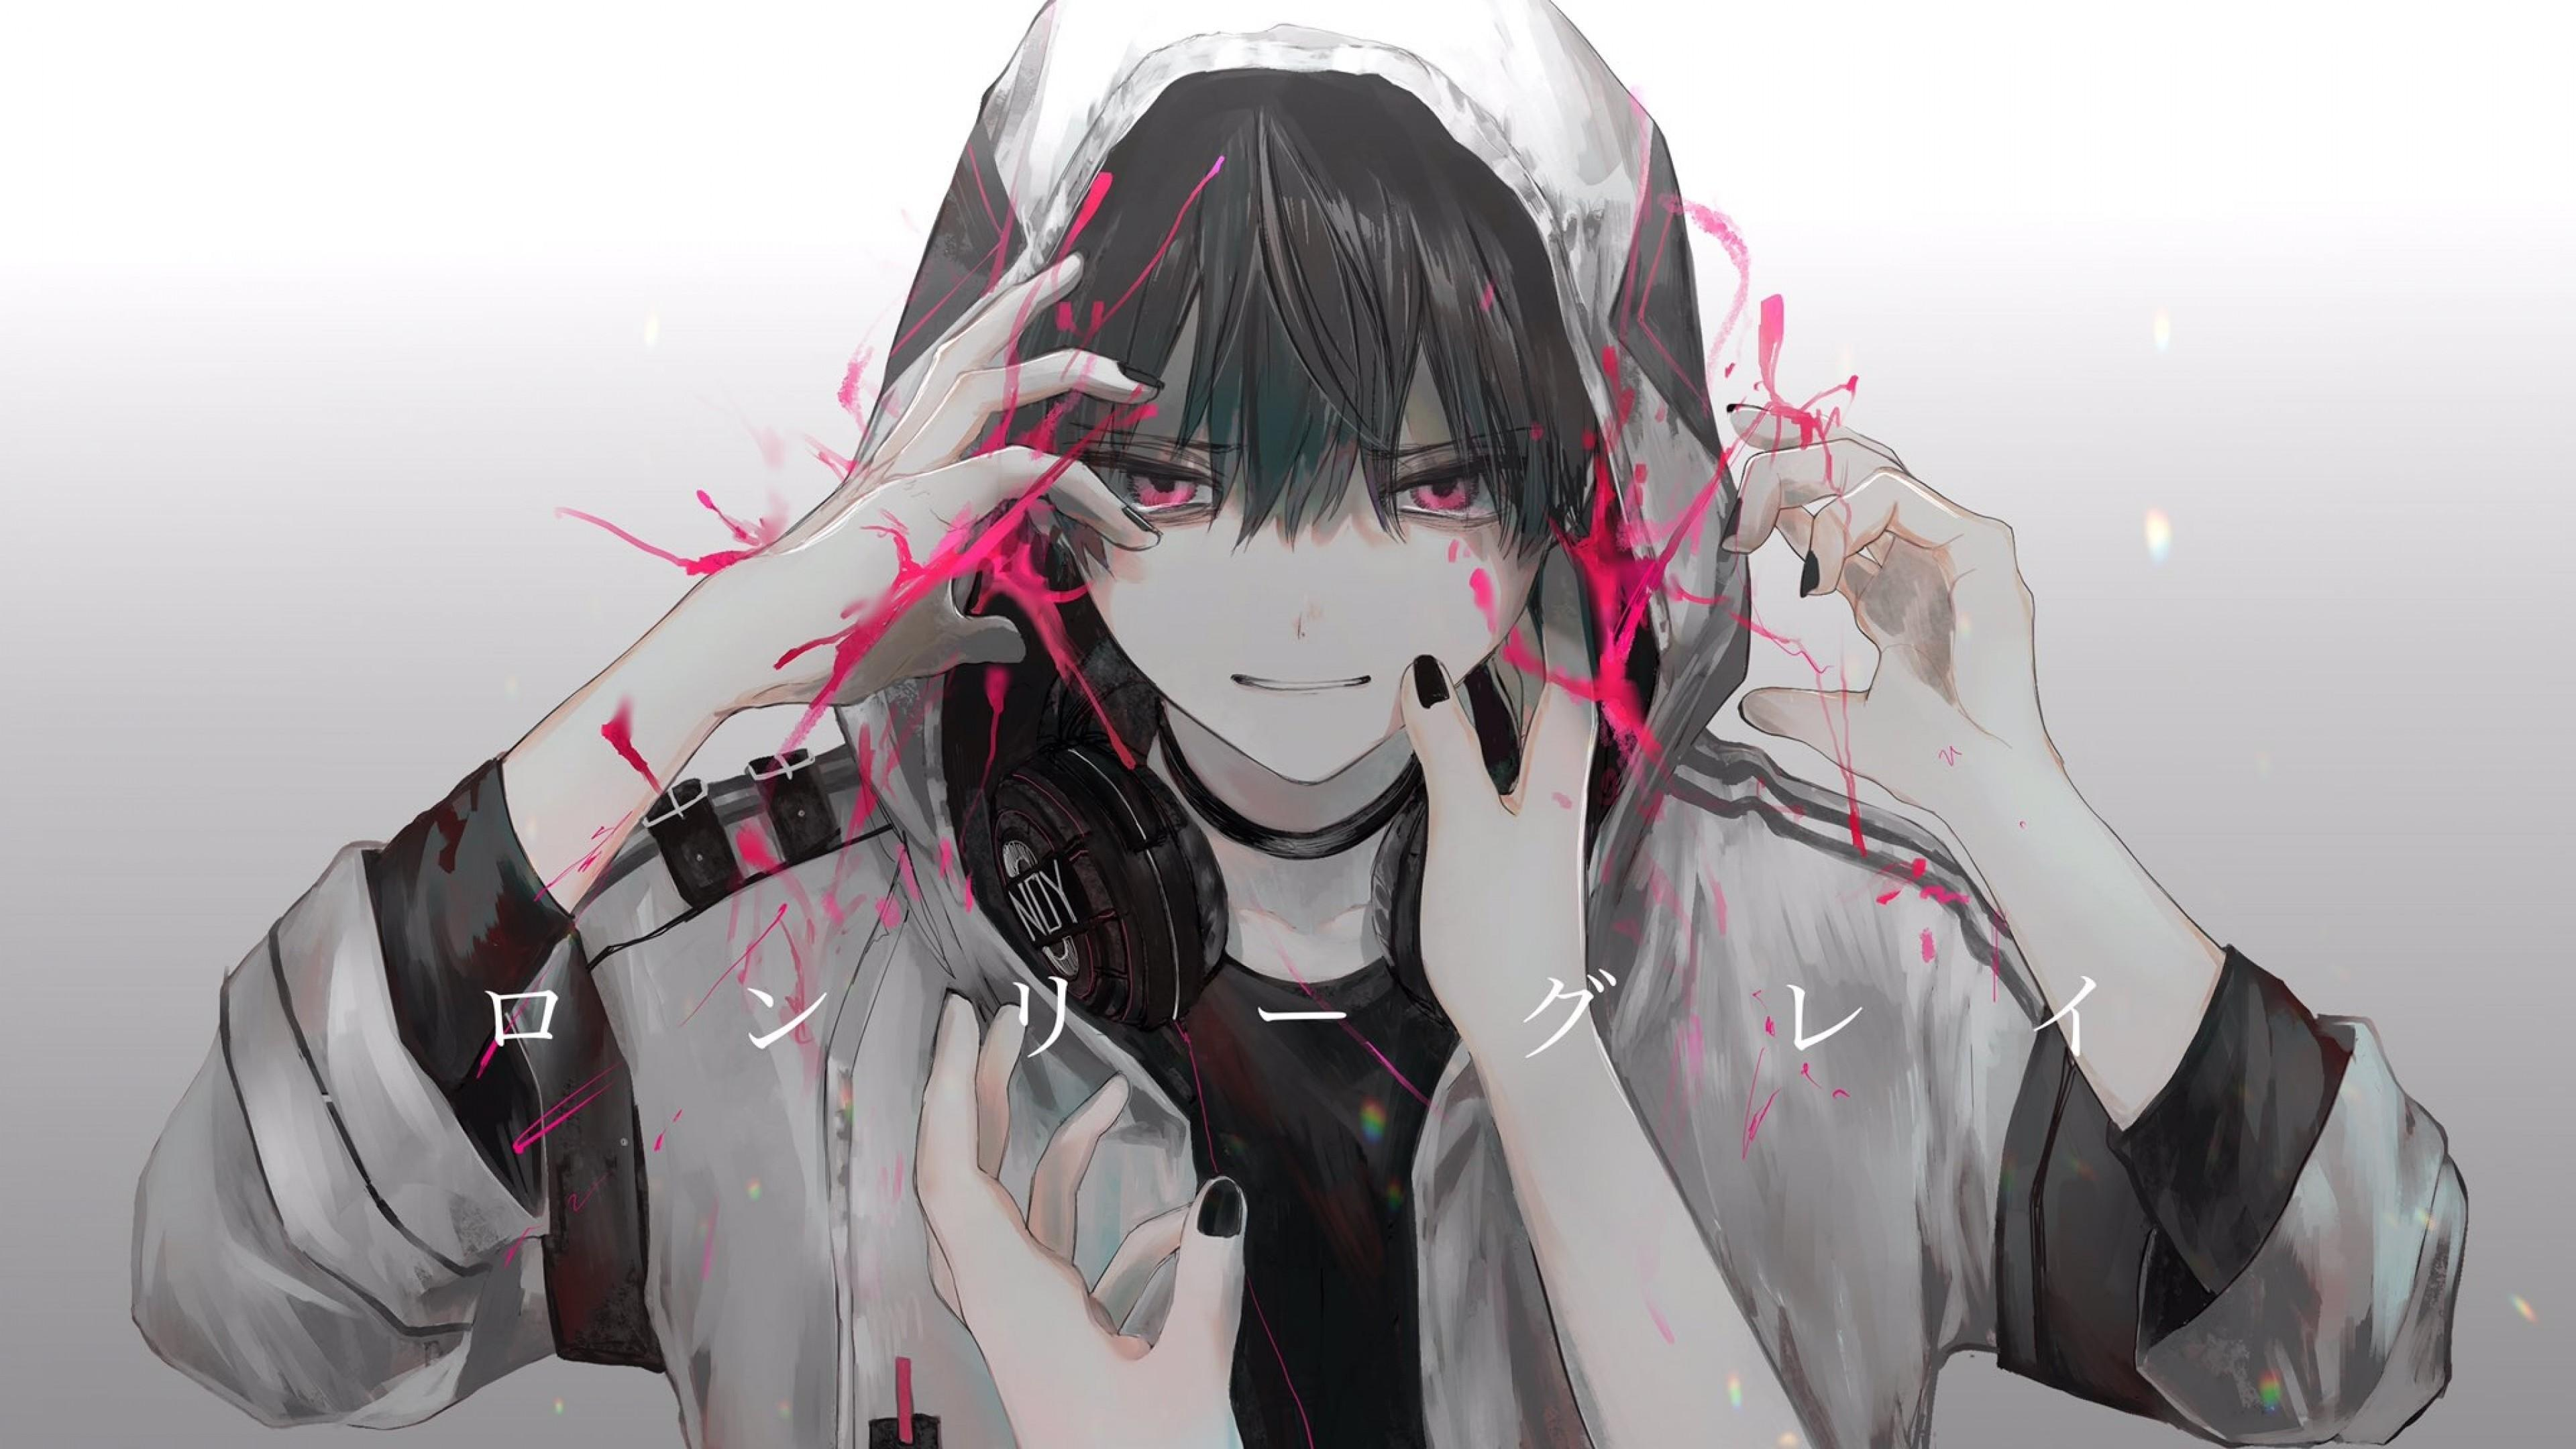 Anime Cool Hoodie Wallpapers Wallpaper Cave